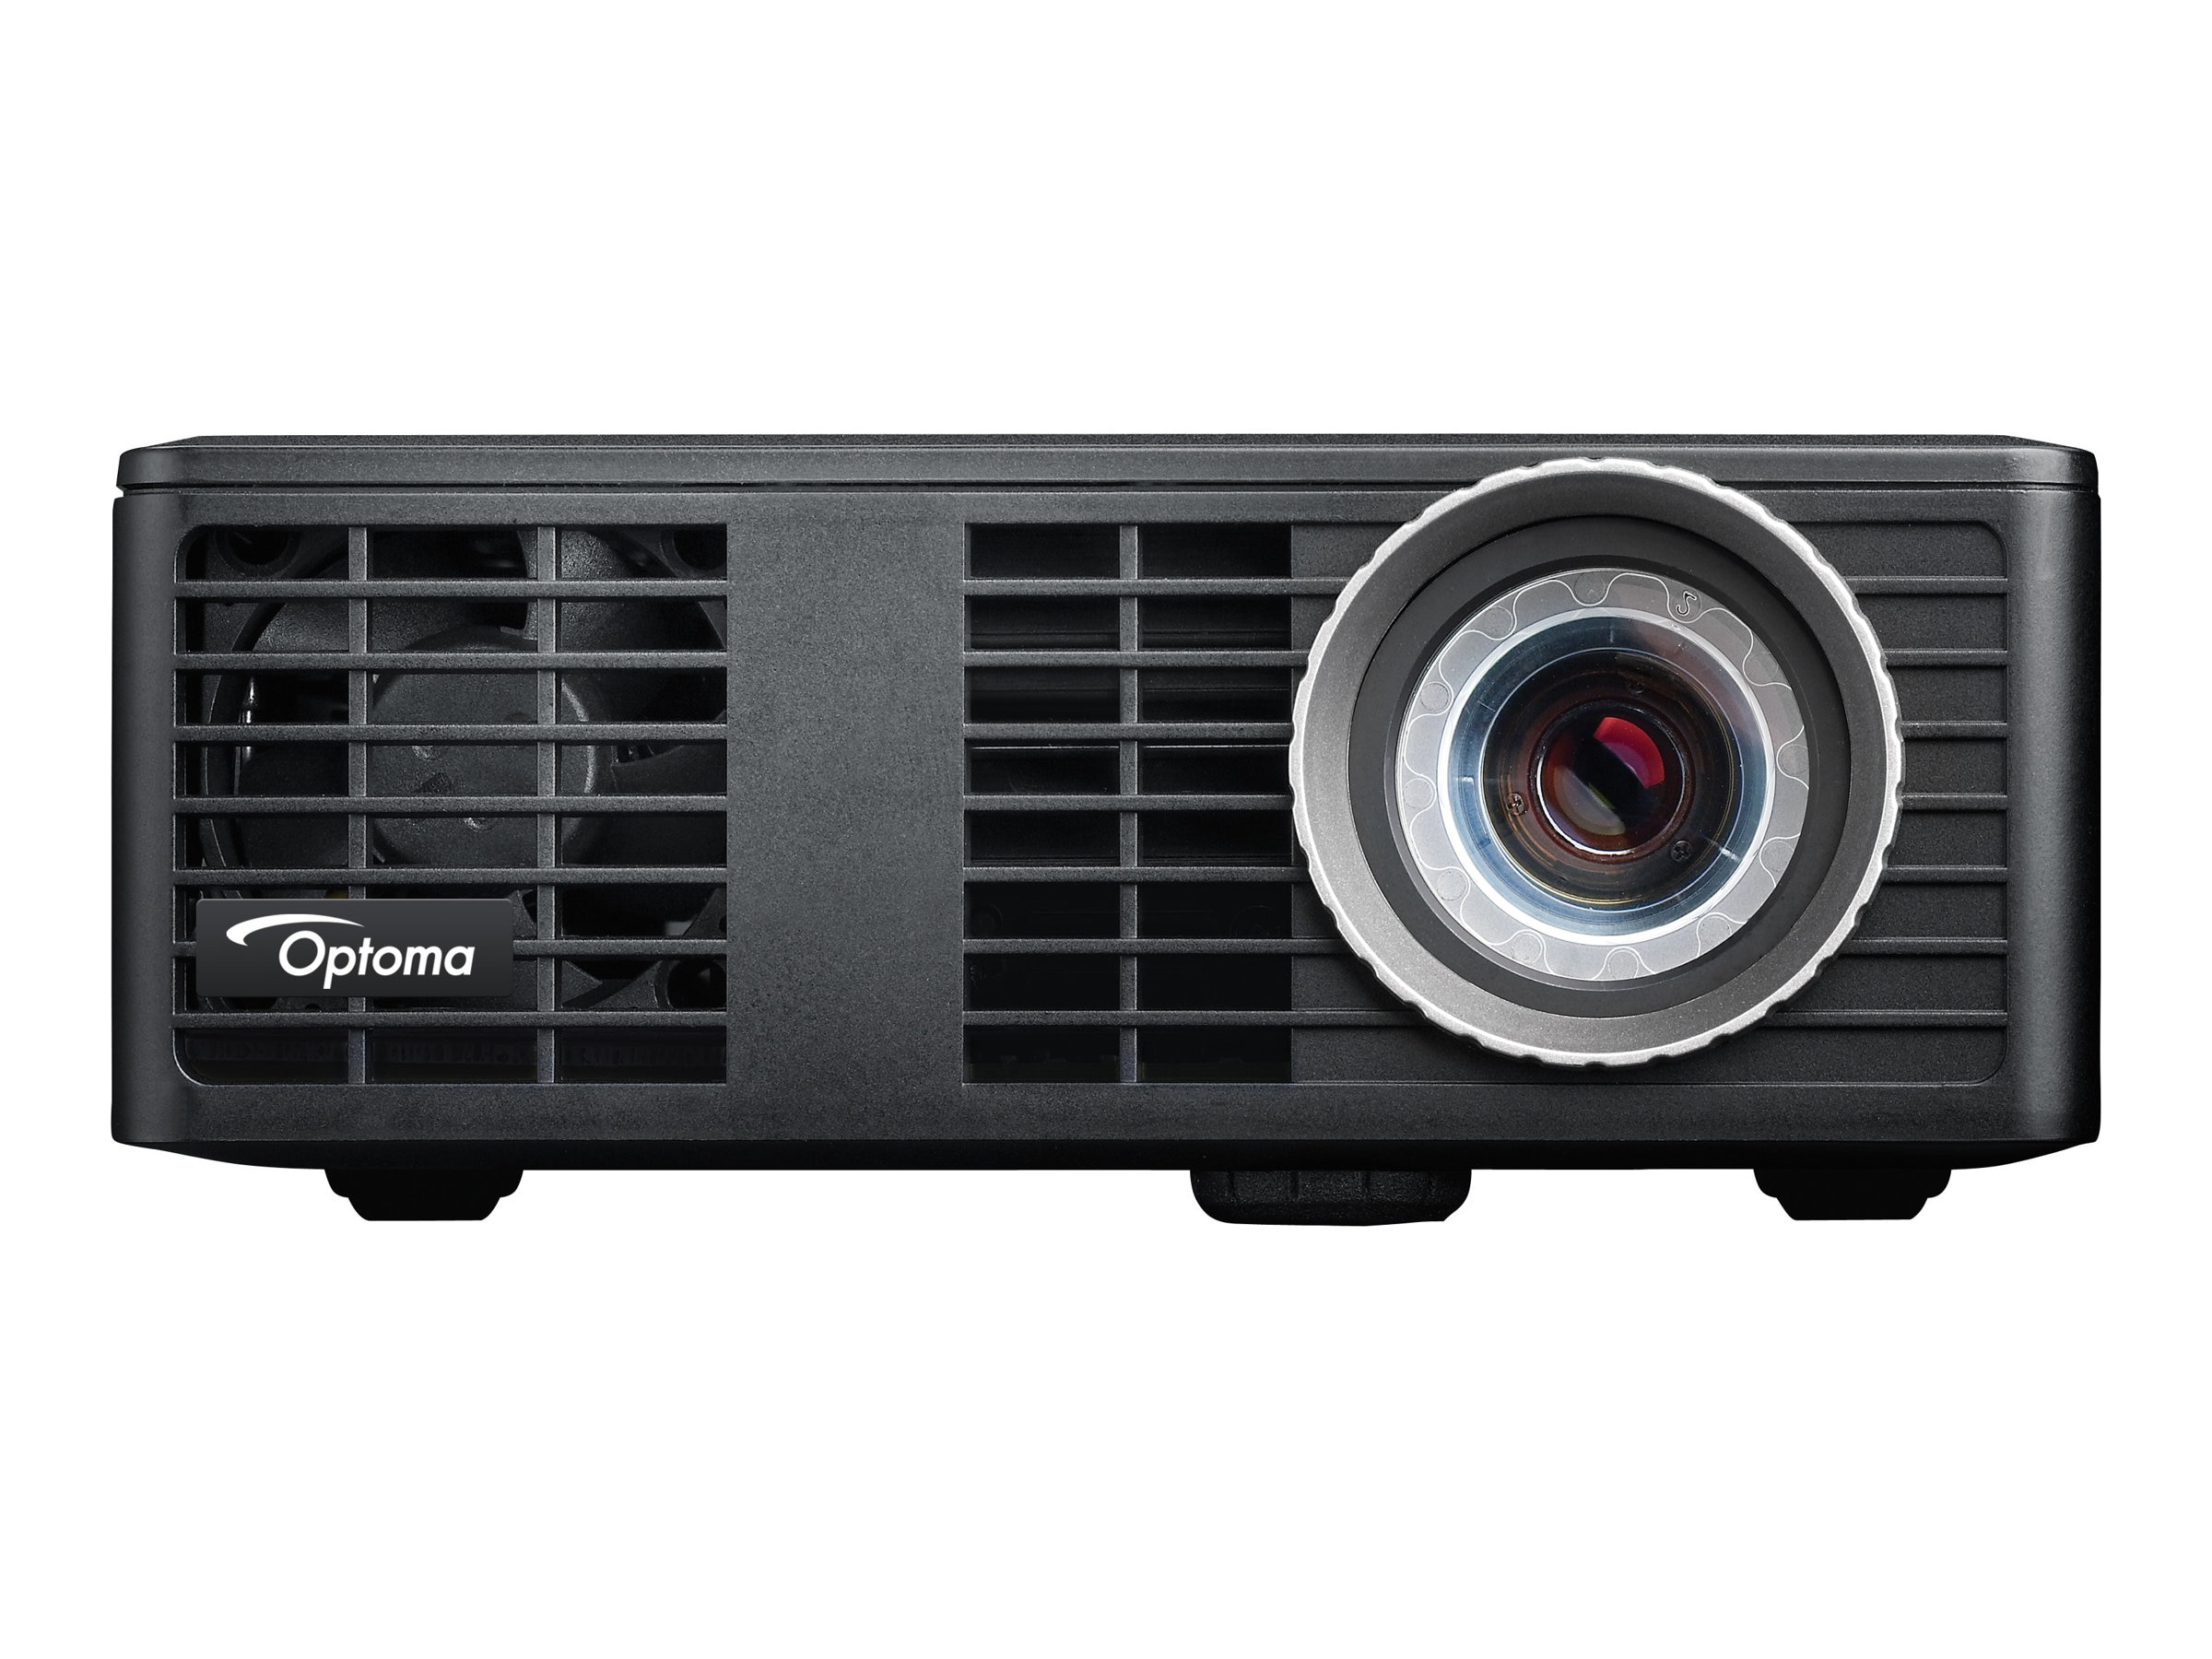 Optoma ML750 WXGA LED Portable Projector, 700 Lumens, Black, ML750, 16465347, Projectors